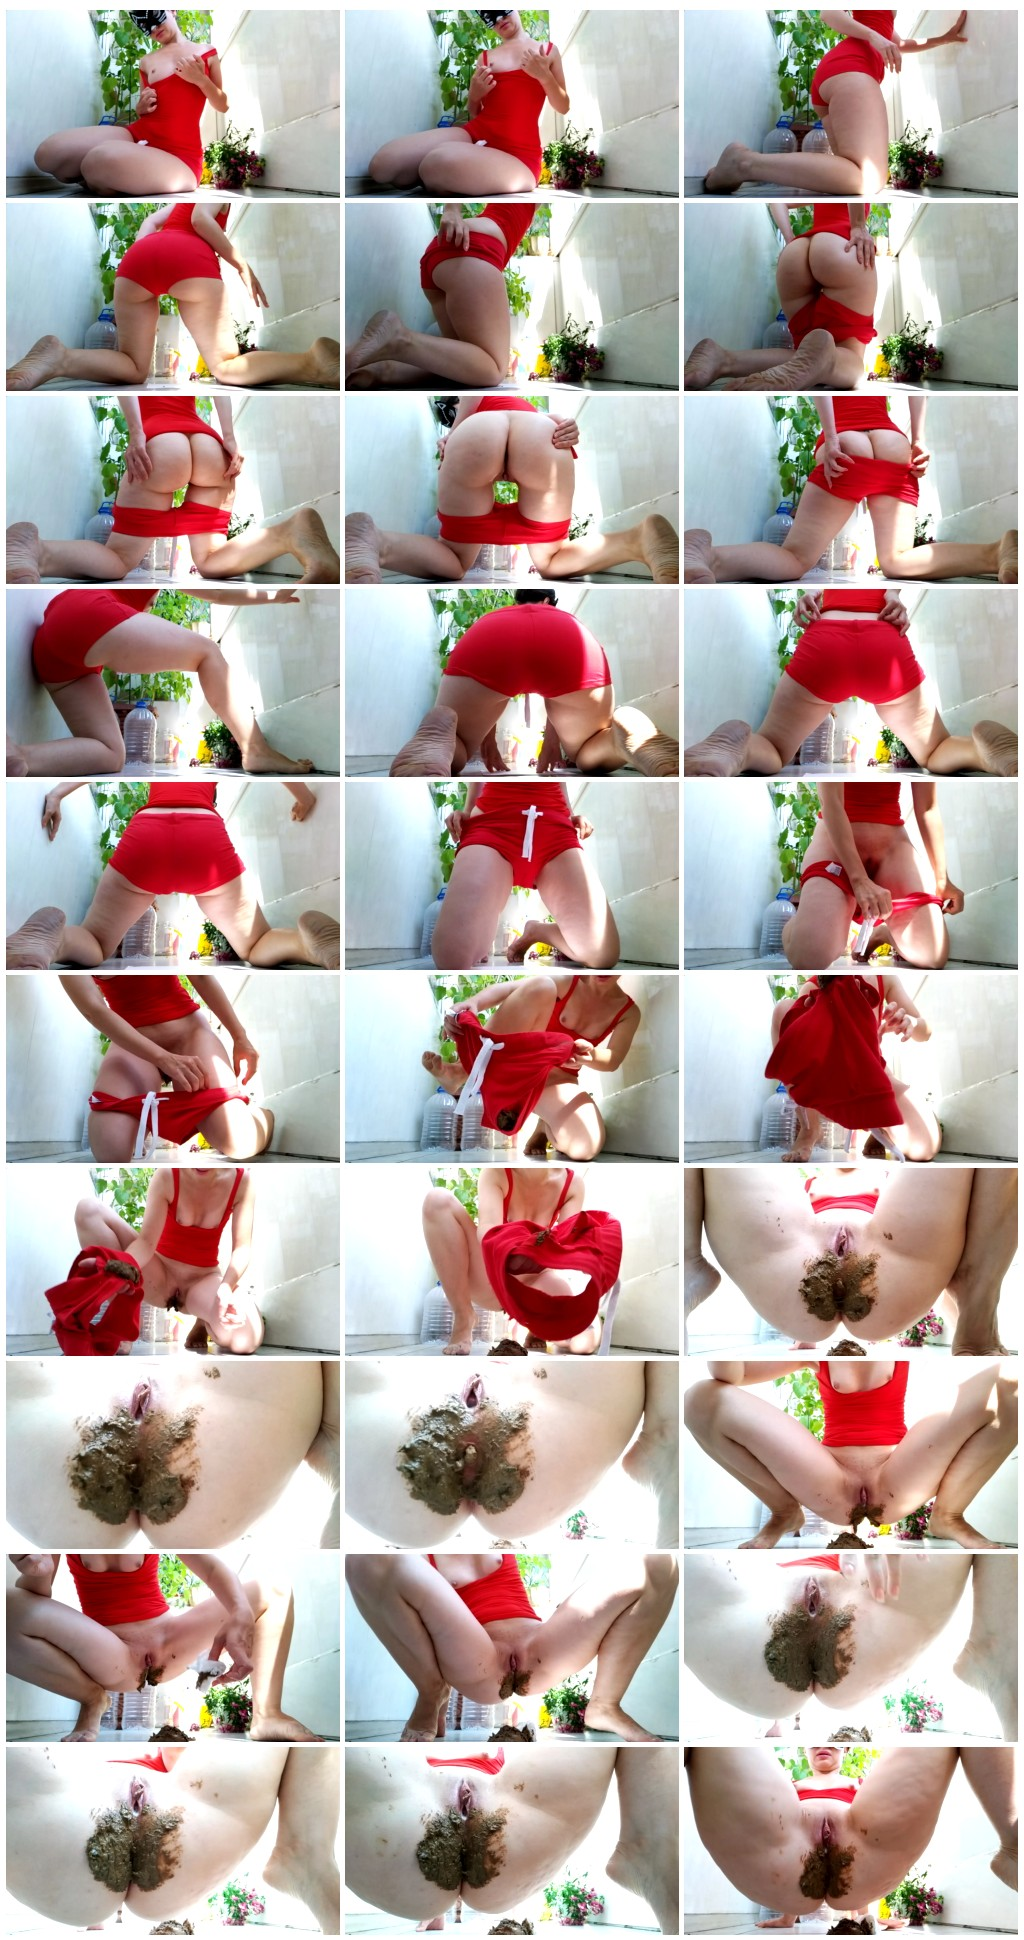 Pooping in shorts smearing and dirty striptease nastygirl Poop Videos Smearing thumb - Pooping in shorts smearing and dirty striptease- nastygirl [Poop Videos, Smearing]